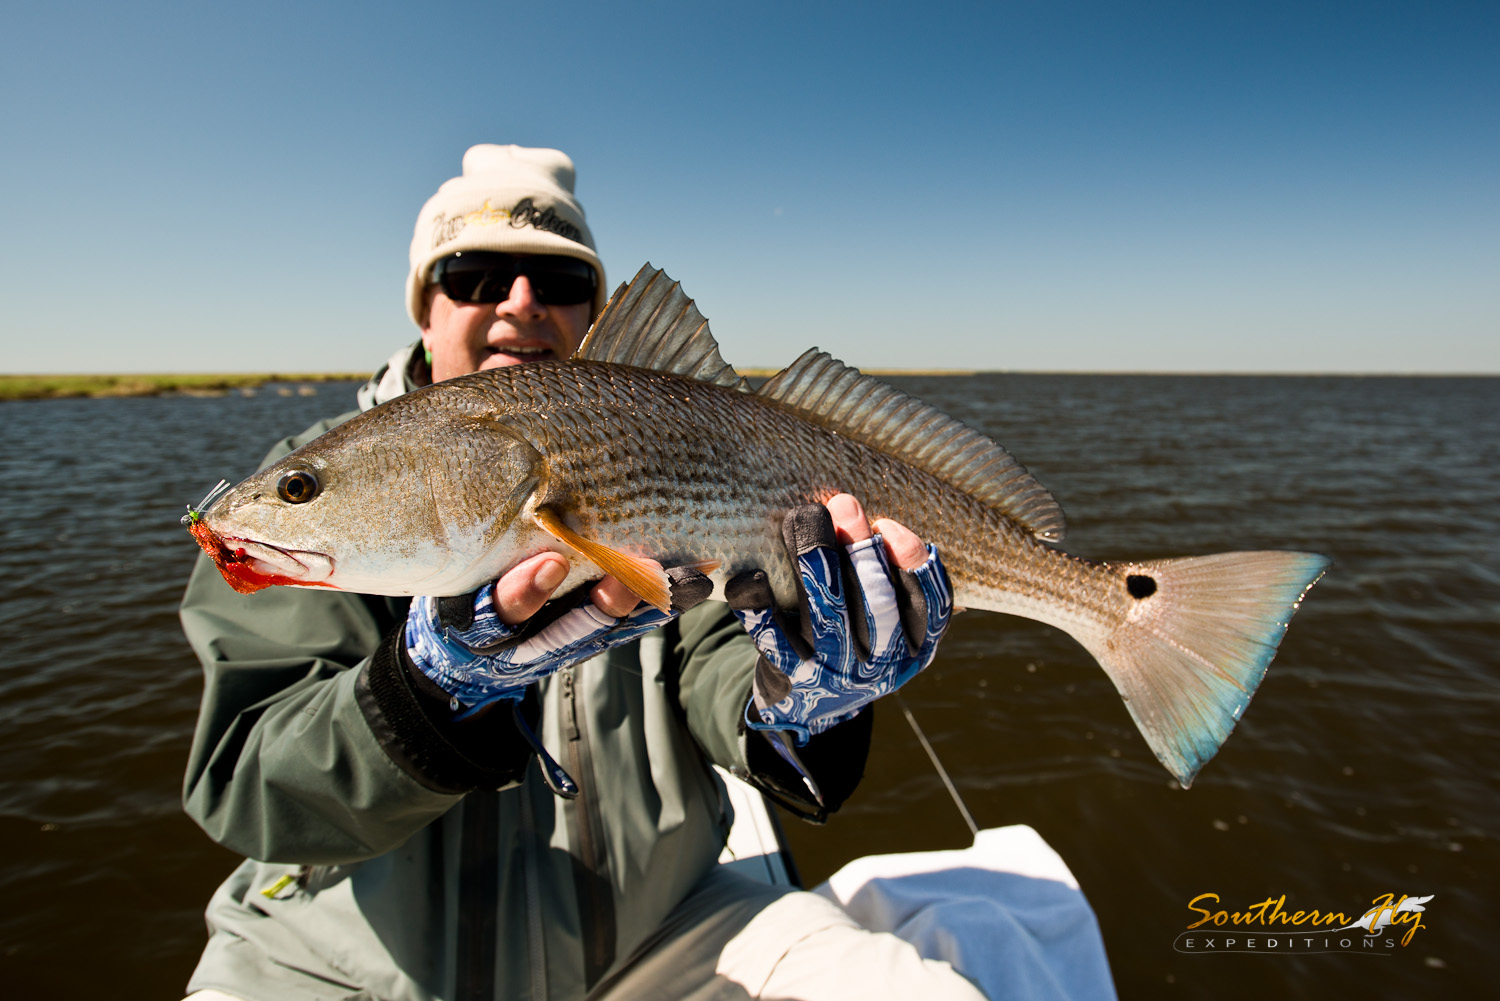 2019-03-27_SouthernFlyExpeditions_NewOrleans_BlakeChambers-1.jpg